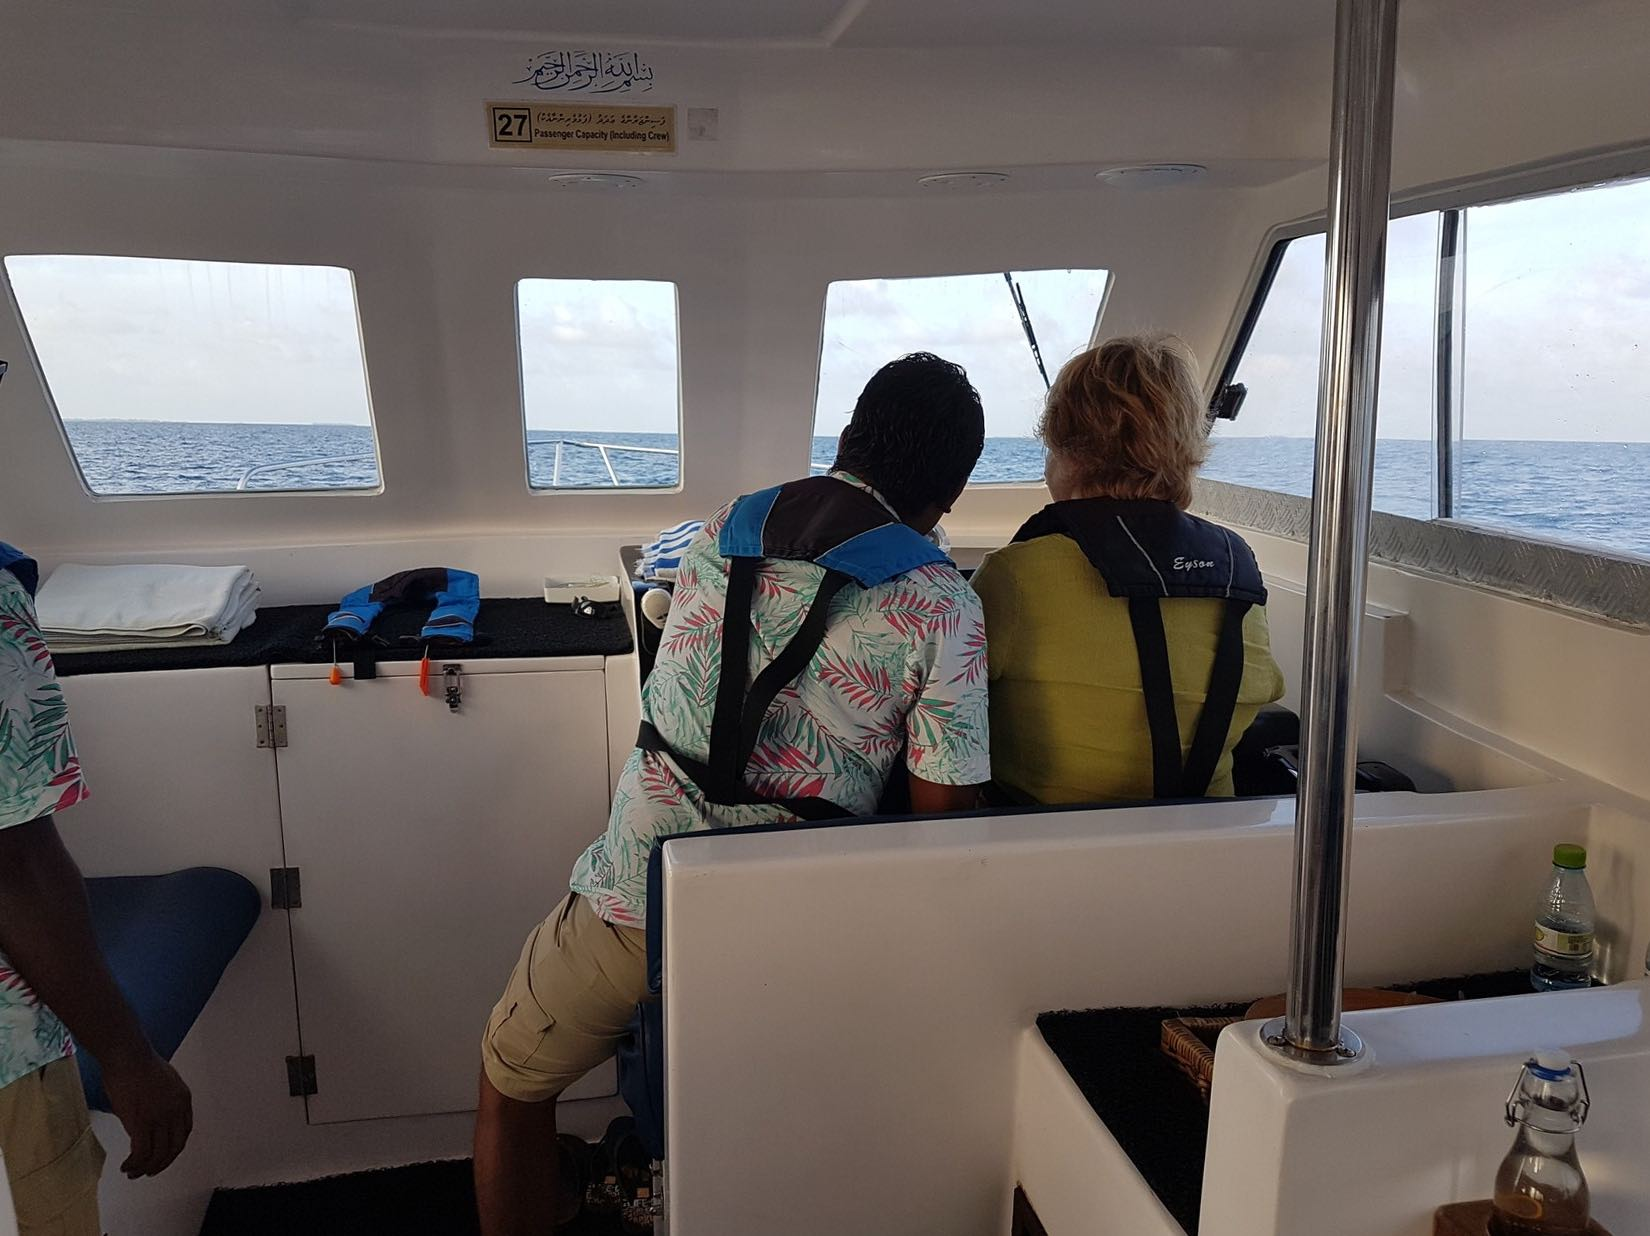 maldives-oblu-by-atmosphere-at-helengeli-speedboat-transfer-driving-holiday-review-feedback-invite-to-paradise-quentin-kate-hulm.jpg